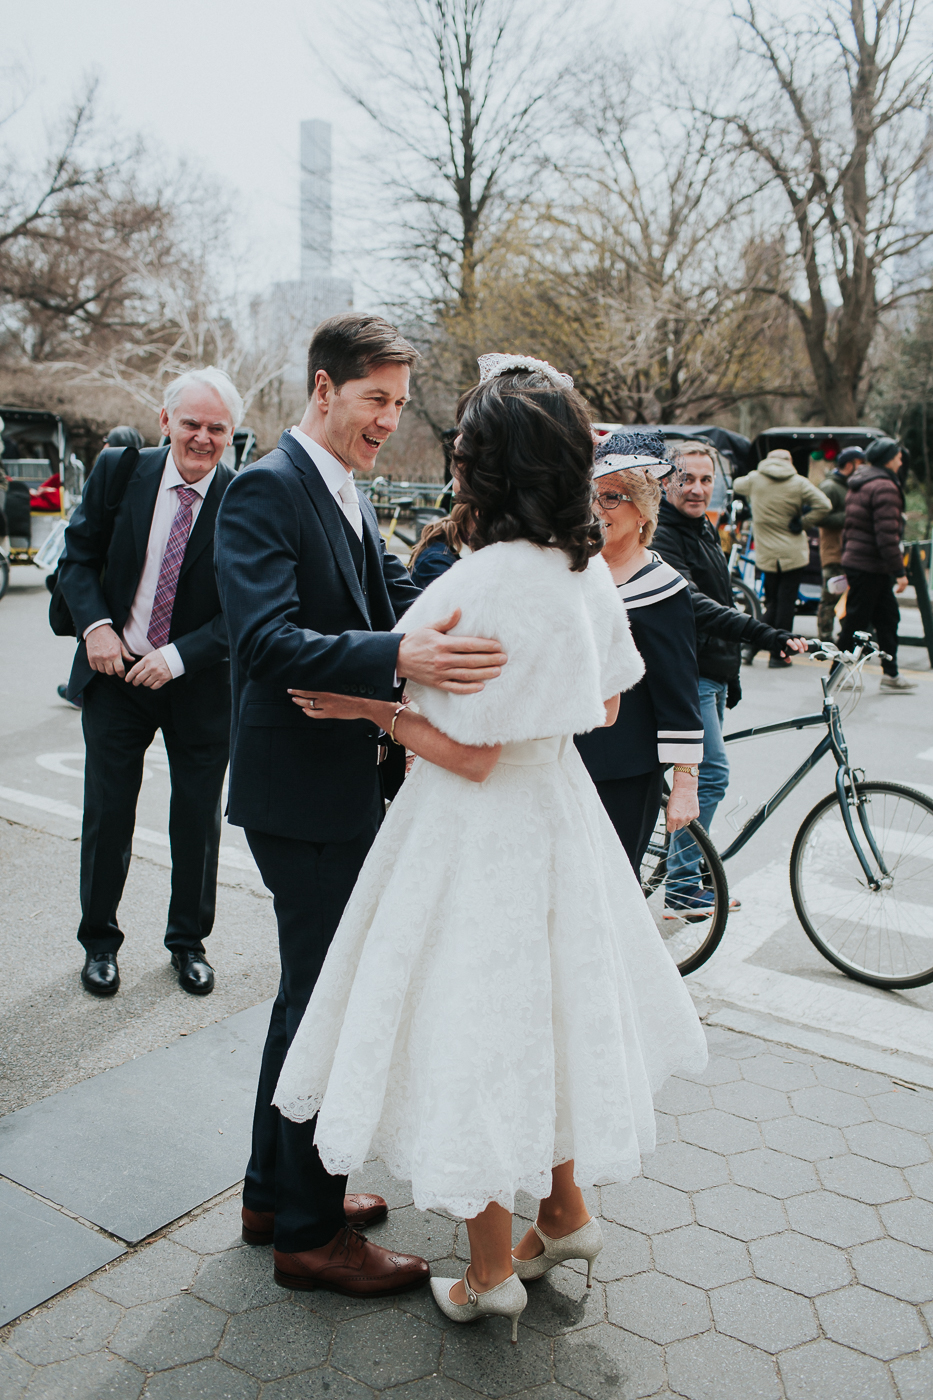 Ladies-Pavilion-Central-Park-NYC-Documentary-Elopement-Wedding-Photographer-11.jpg